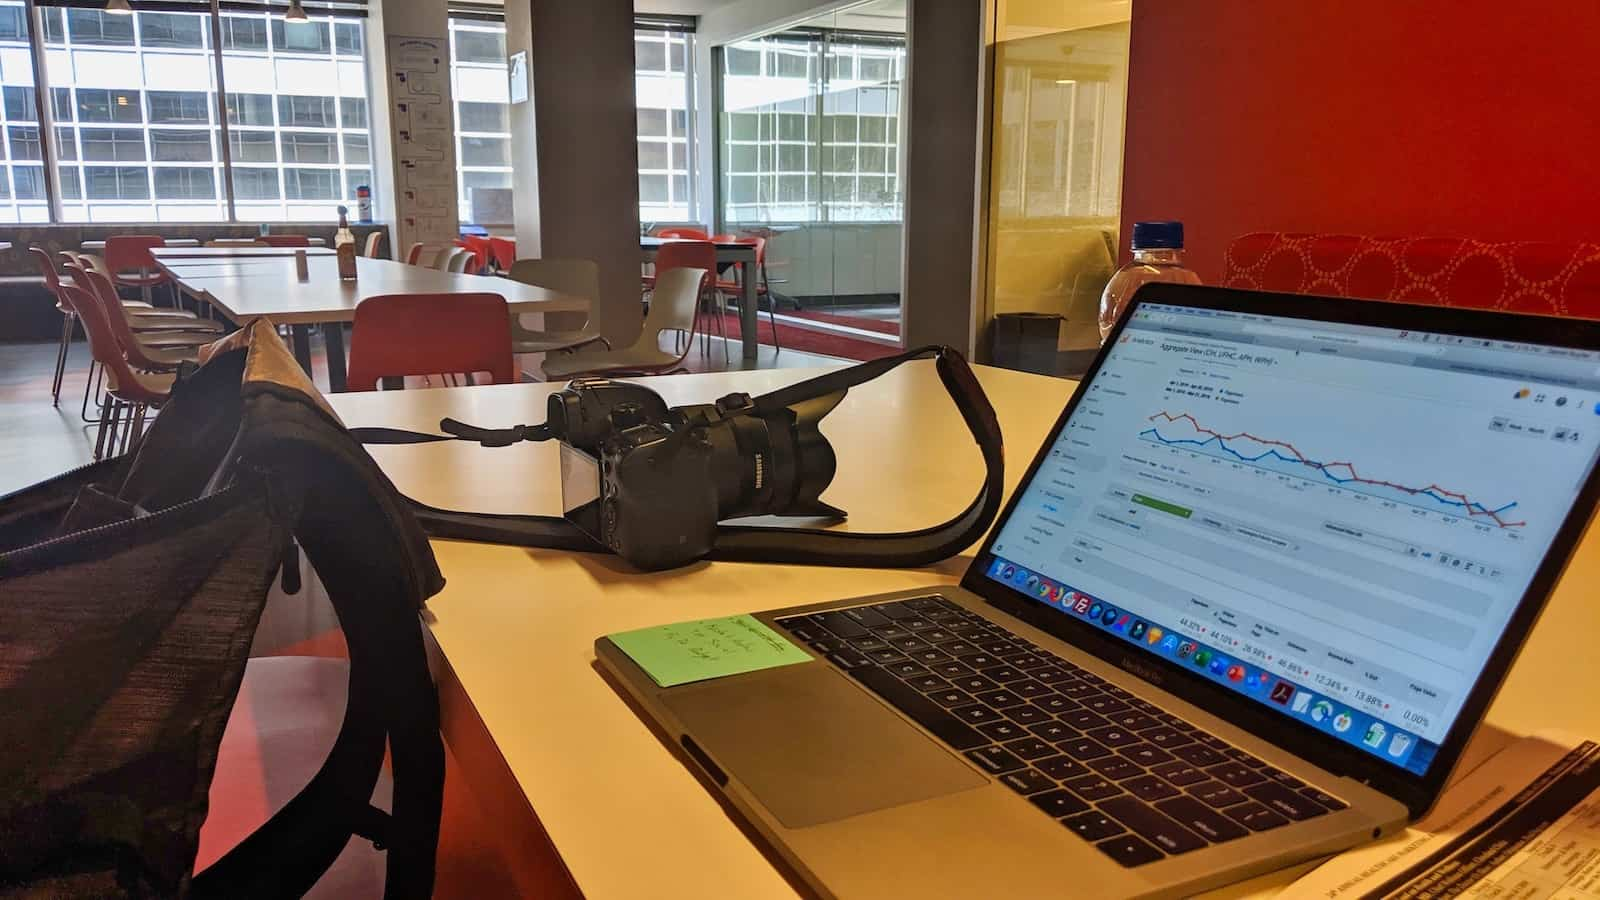 Chicago 2019 - Working at Rightpoint Chicago Office